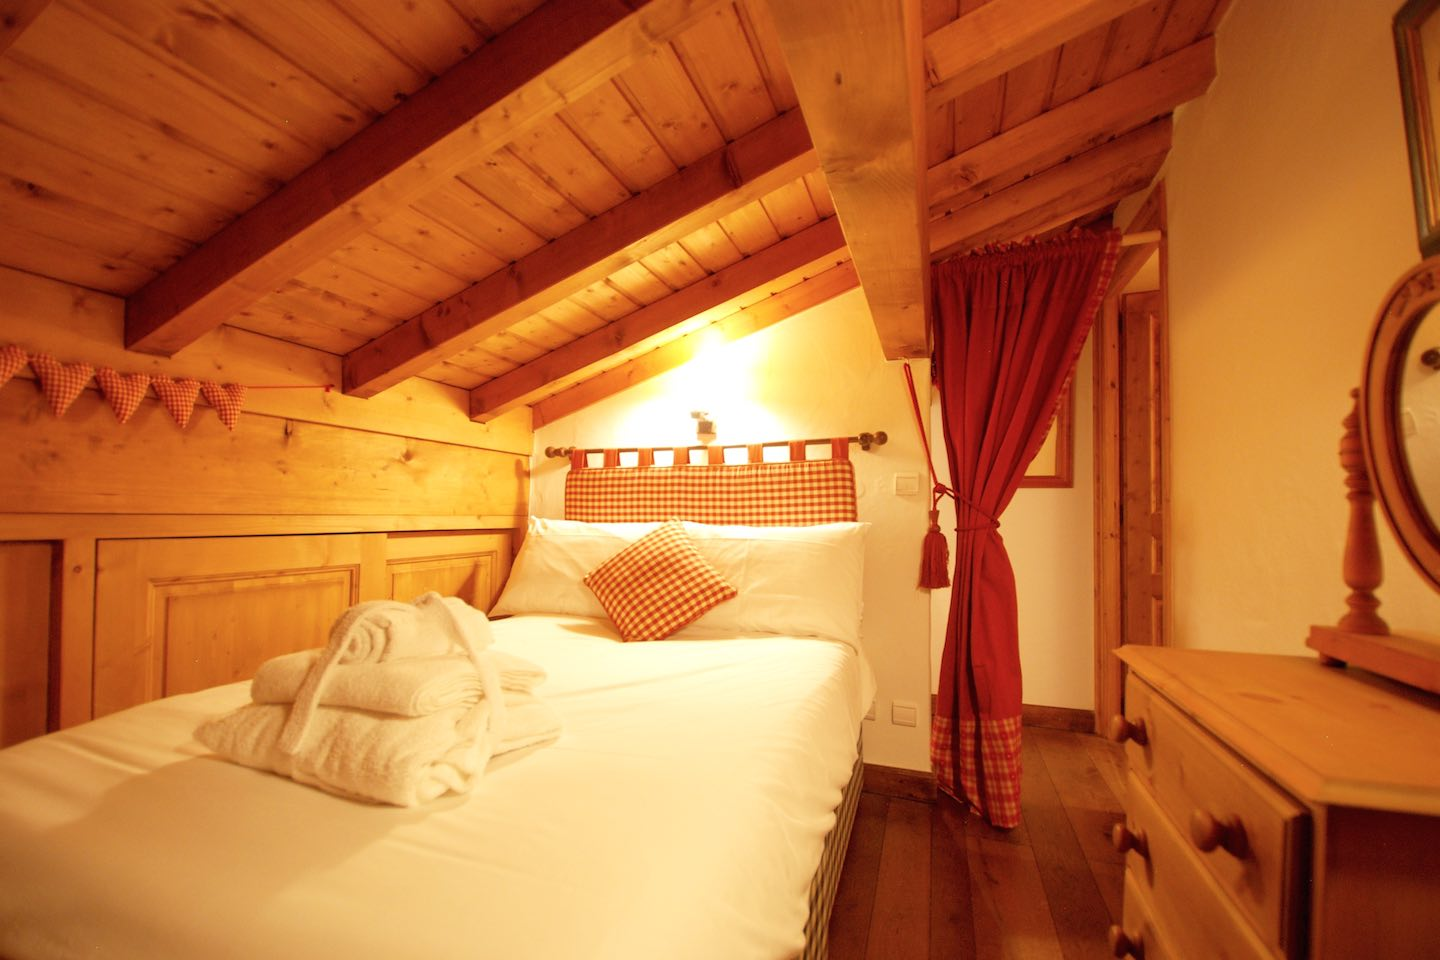 Chalet de mes Rêves - Bedroom Two